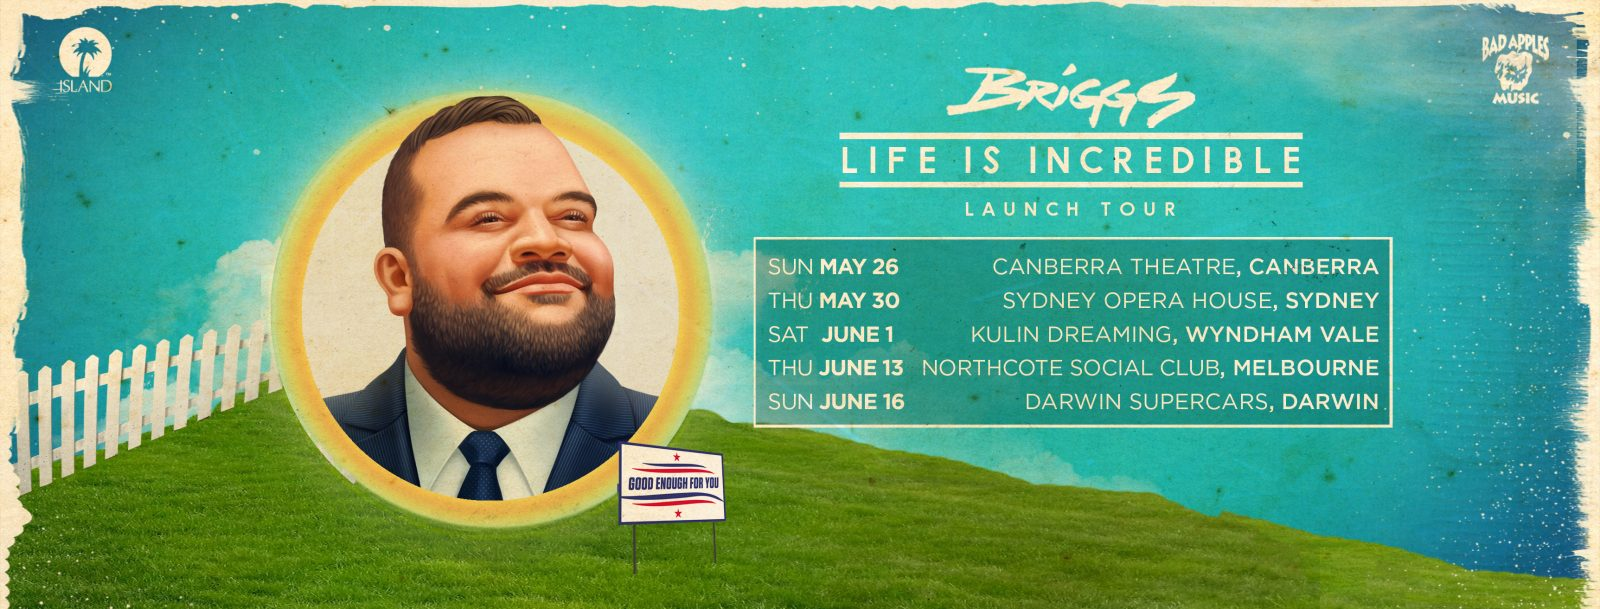 BRIGGS 'LIFE IS INCREDIBLE' TOUR